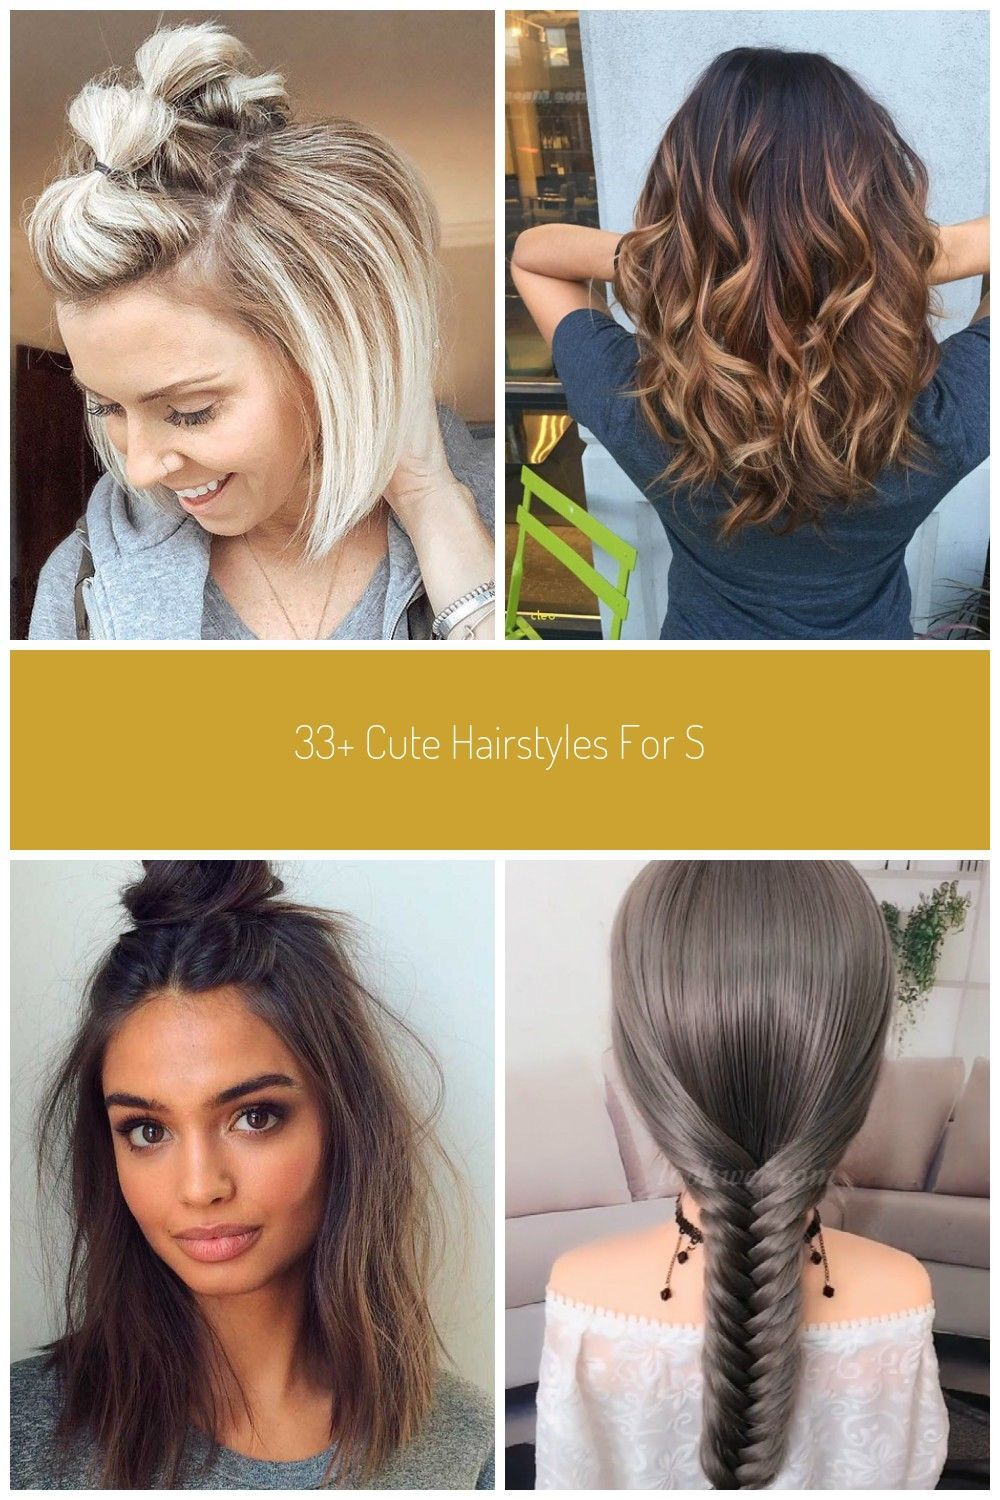 New Cute Hairstyle Makeover 2020 In 2020 Hair Makeover Hair Styles Cute Hairstyles For Short Hair